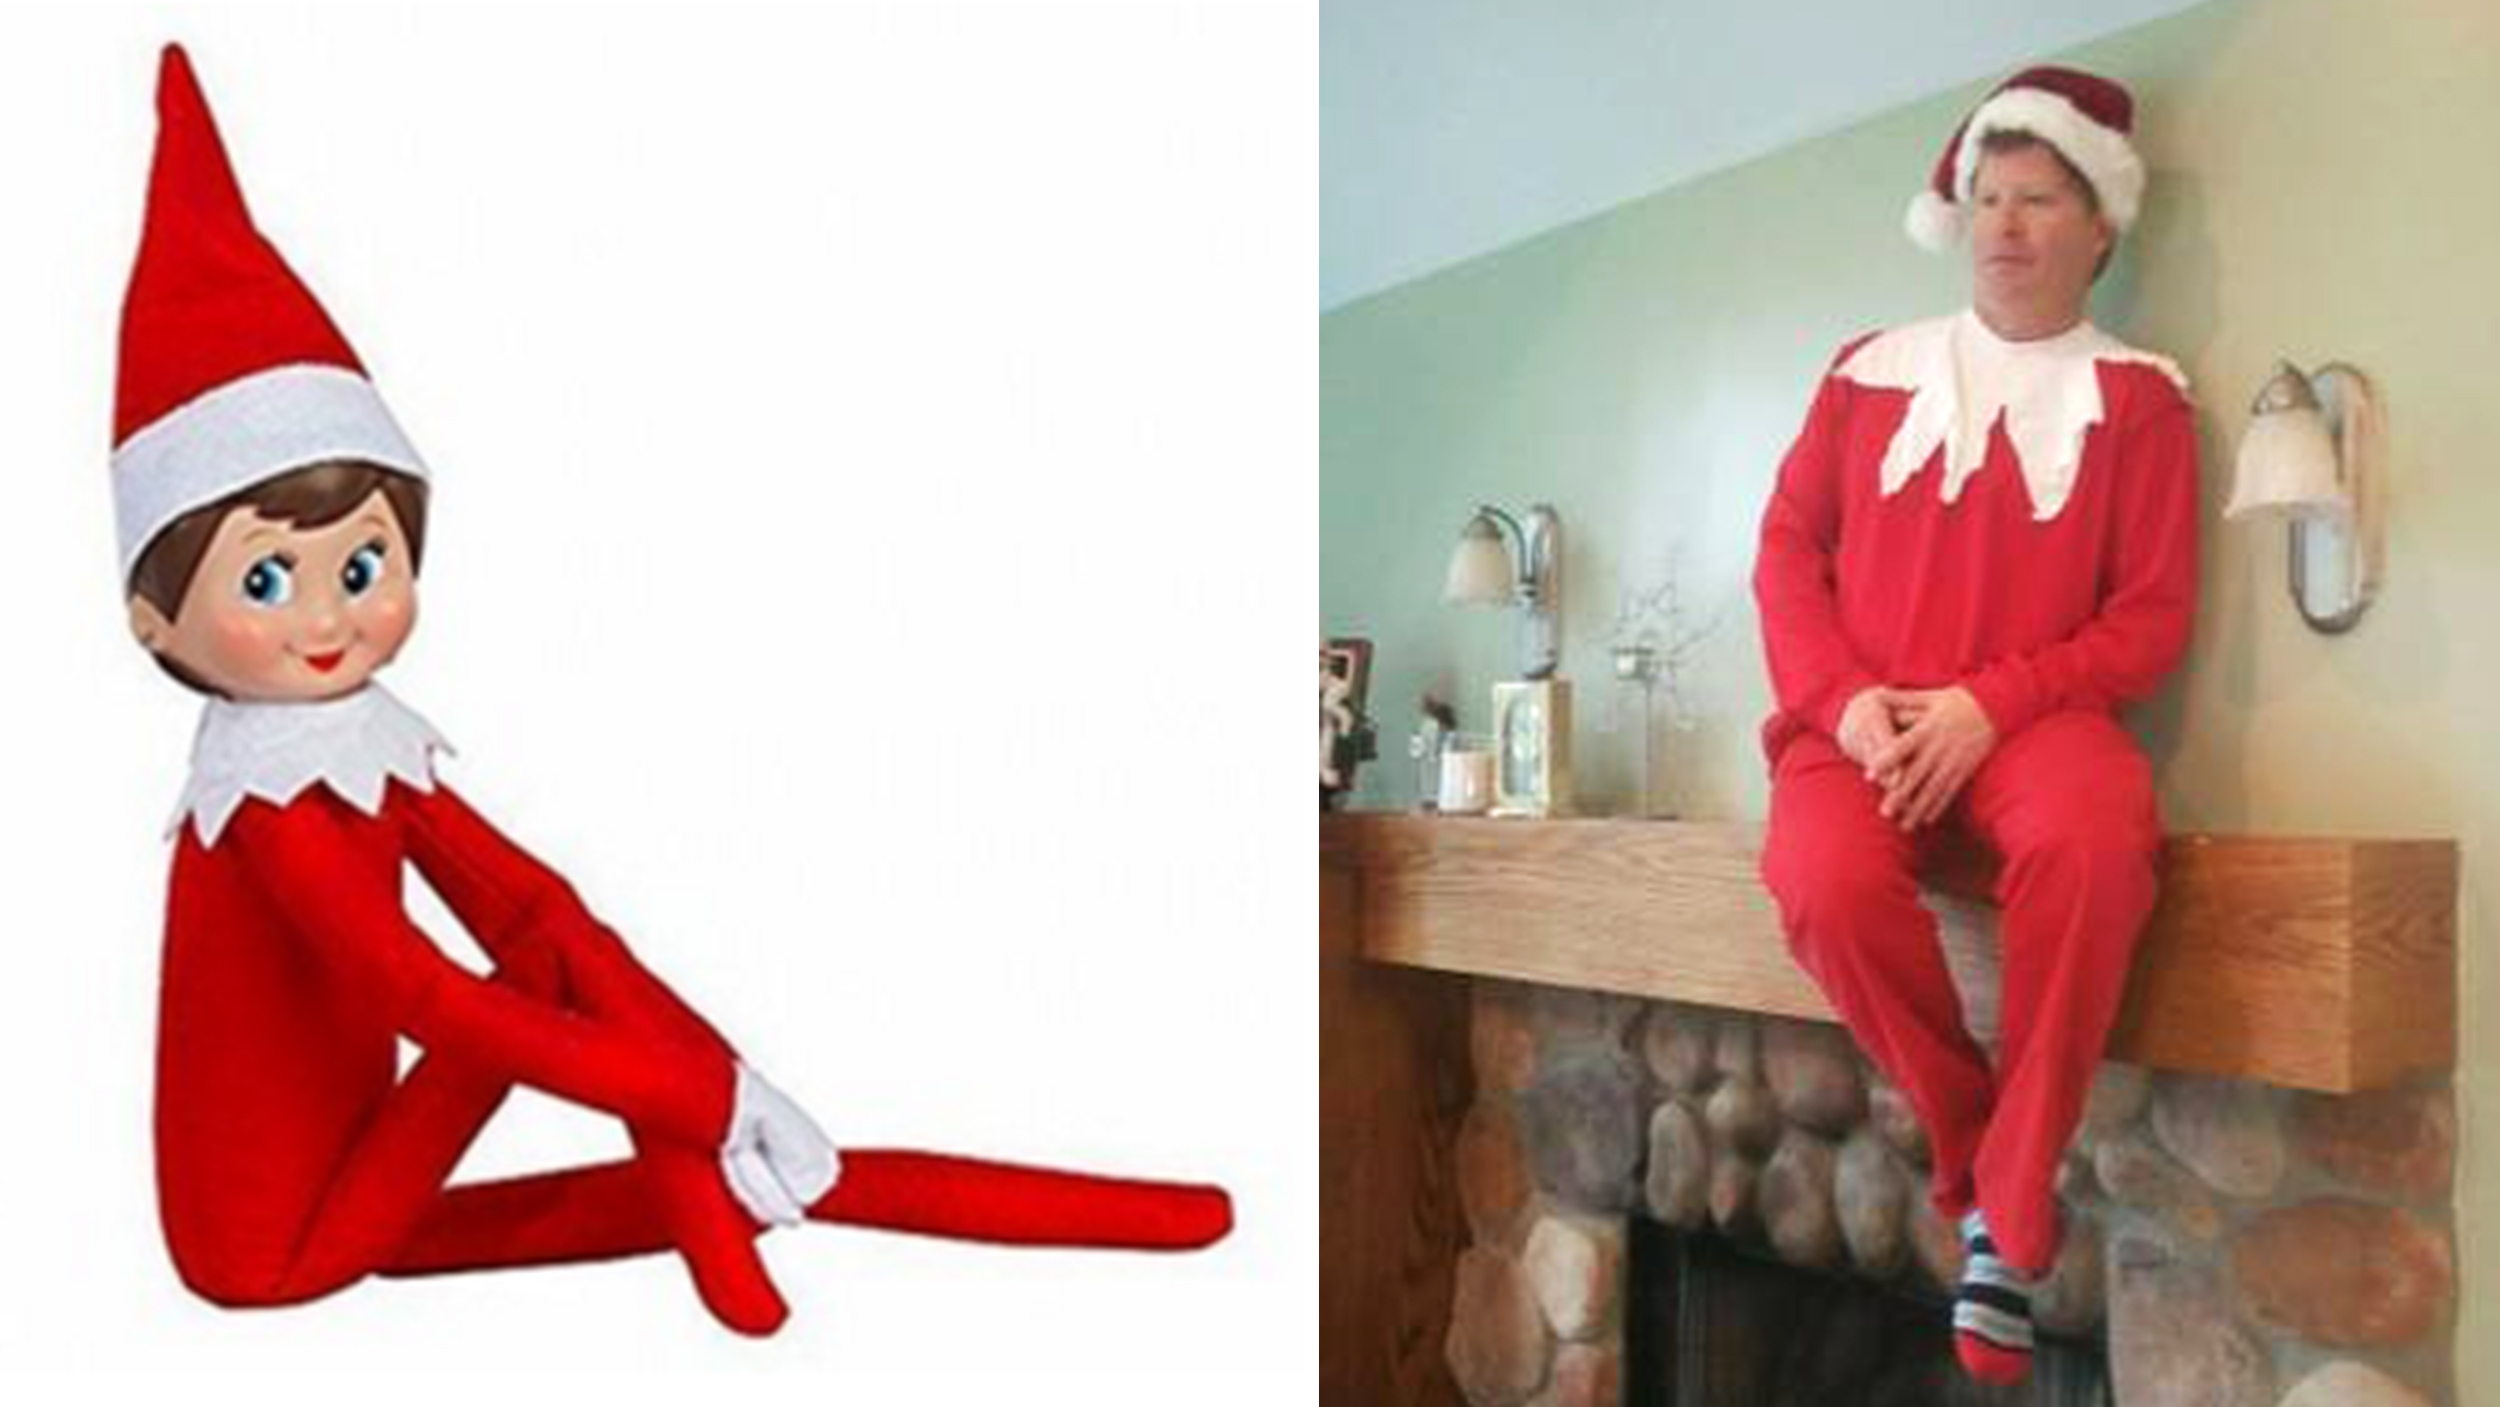 Letter Shelf Boston Man Offers To Pose As Living Elf On The Shelf In